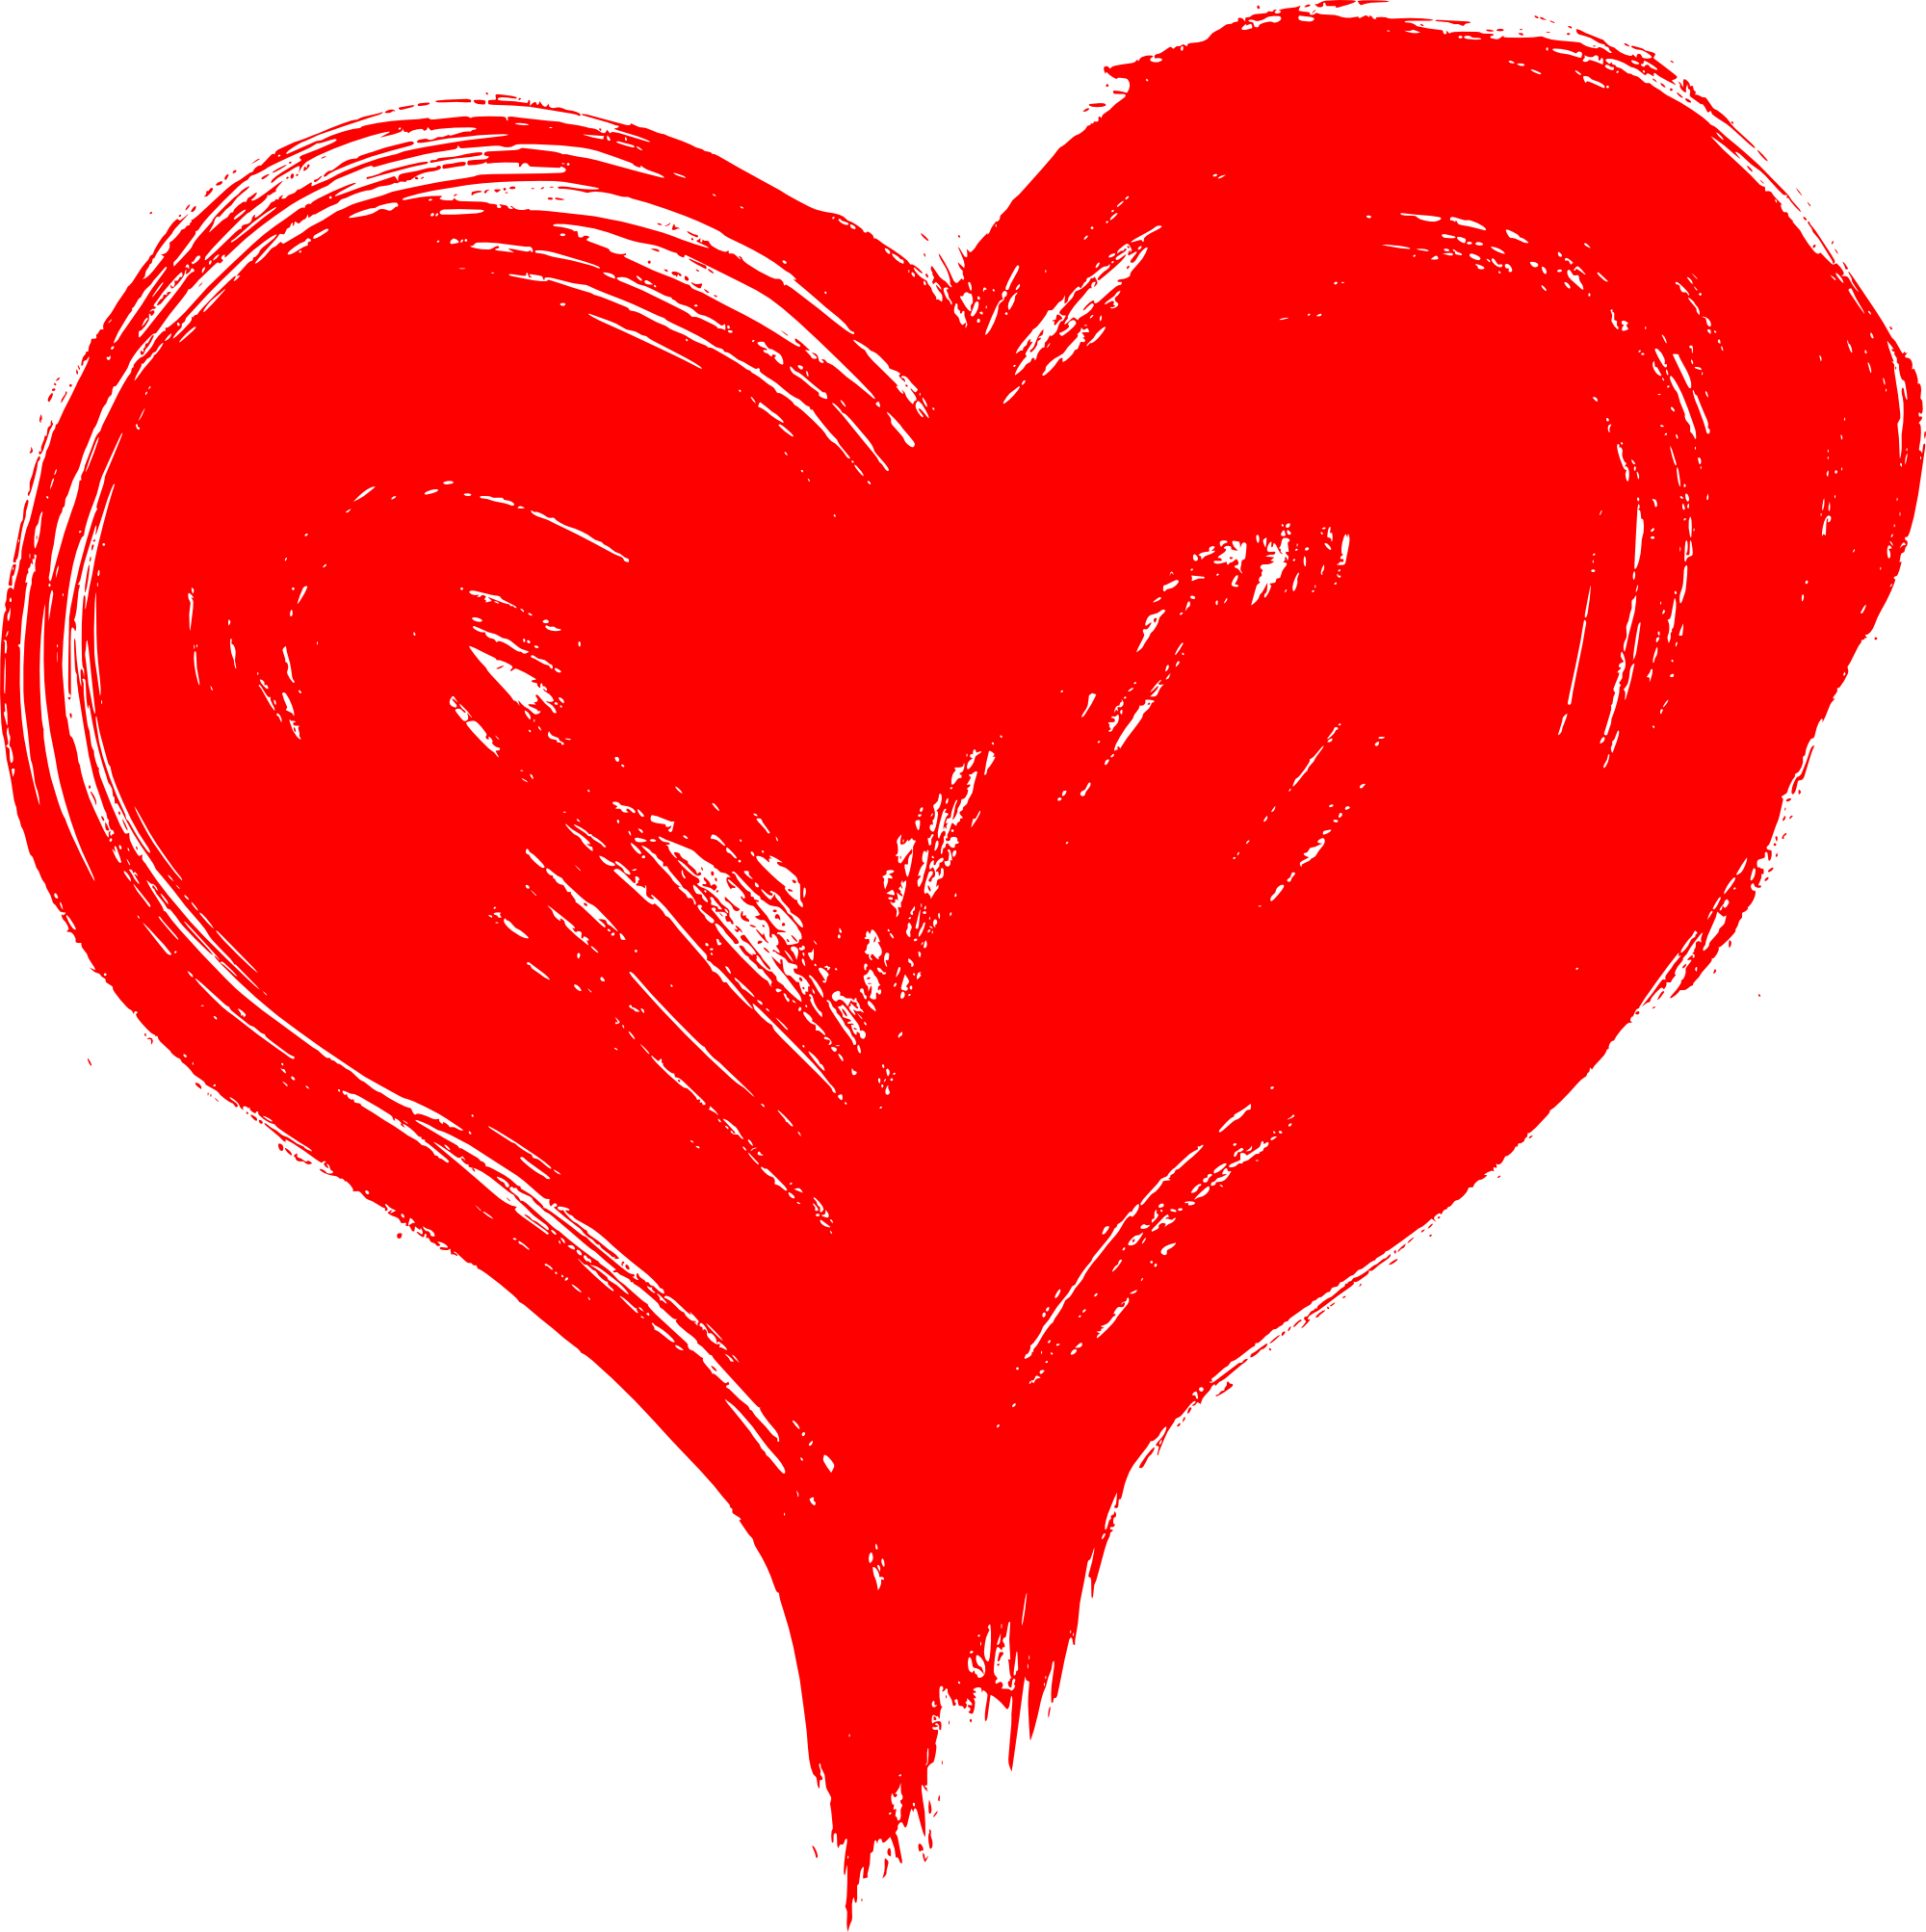 heart_PNG51326